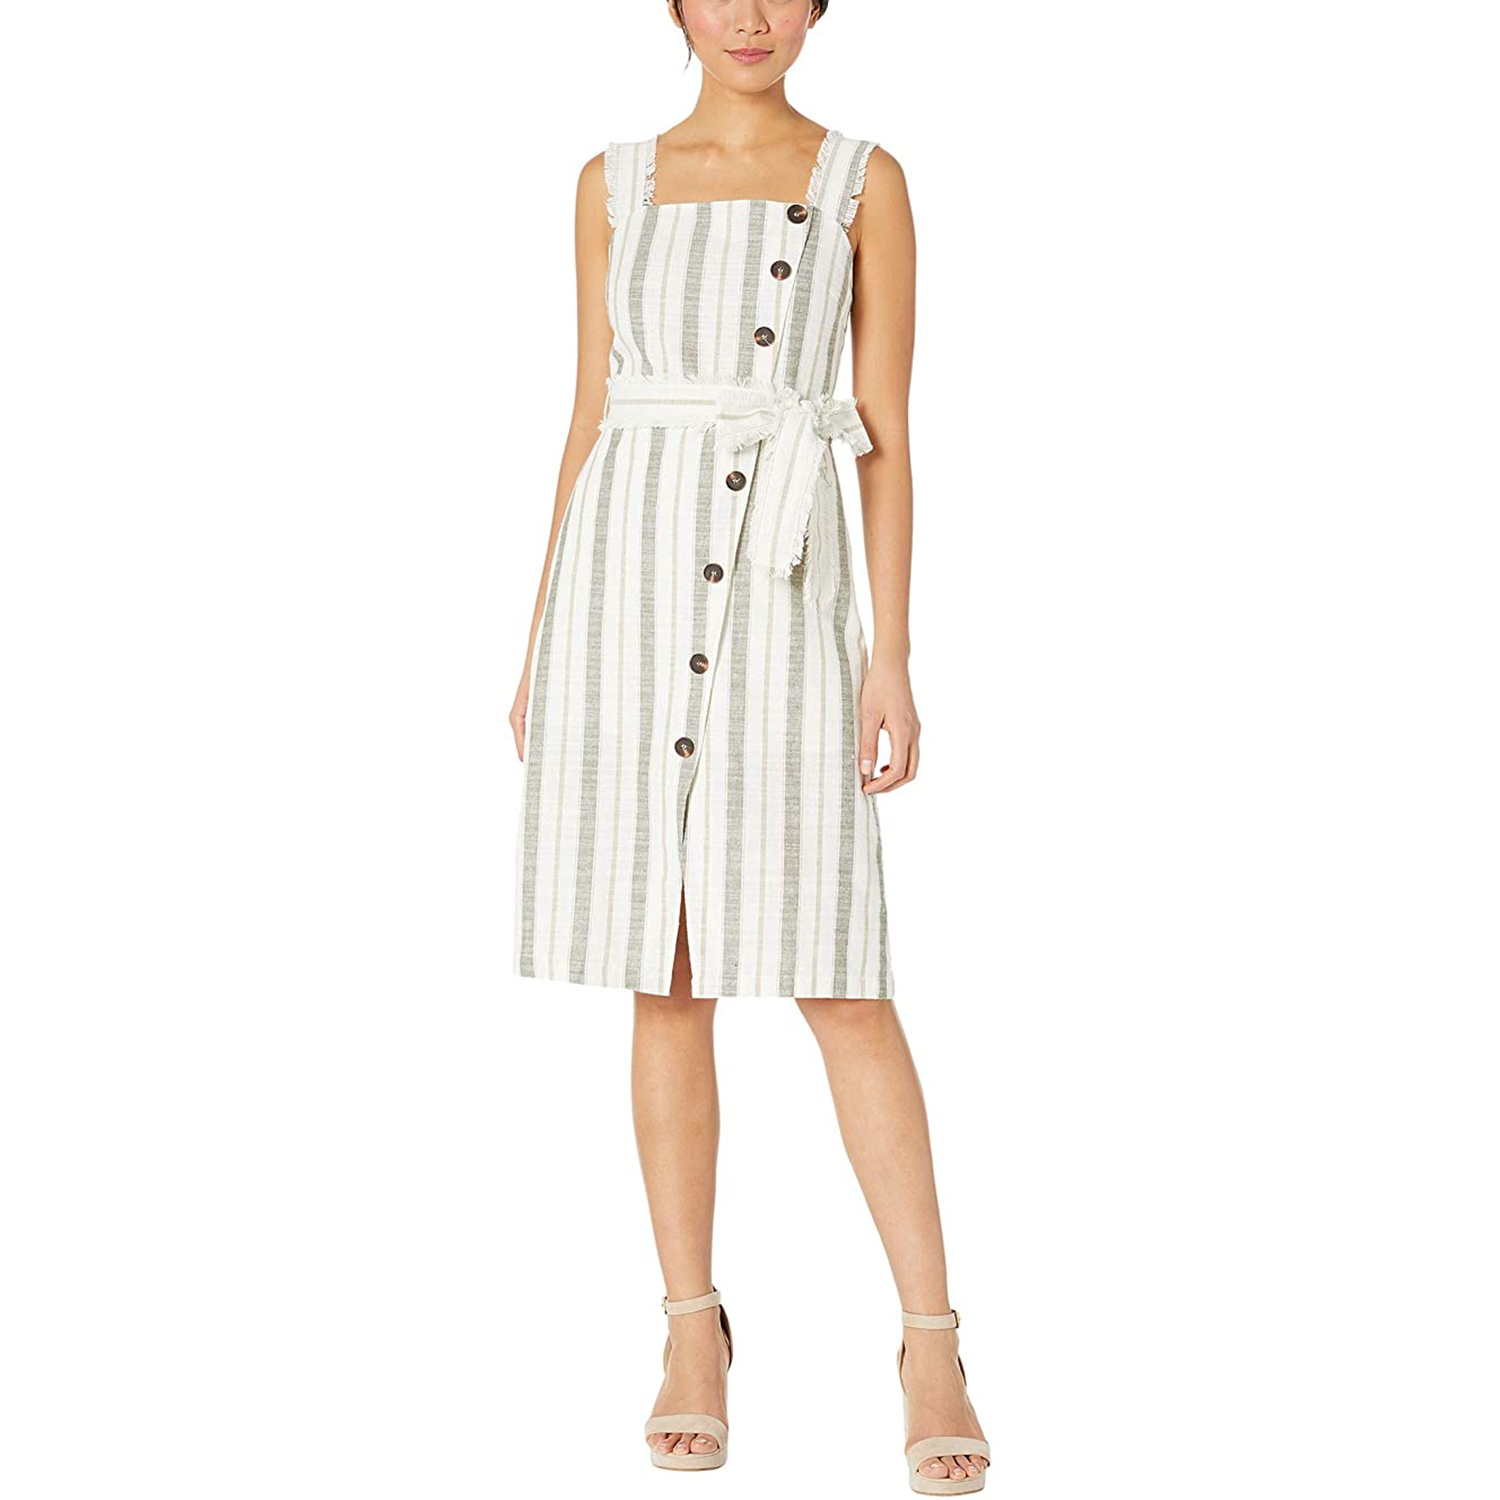 American Rose Aviana Striped Midi Dress with Waist Tie